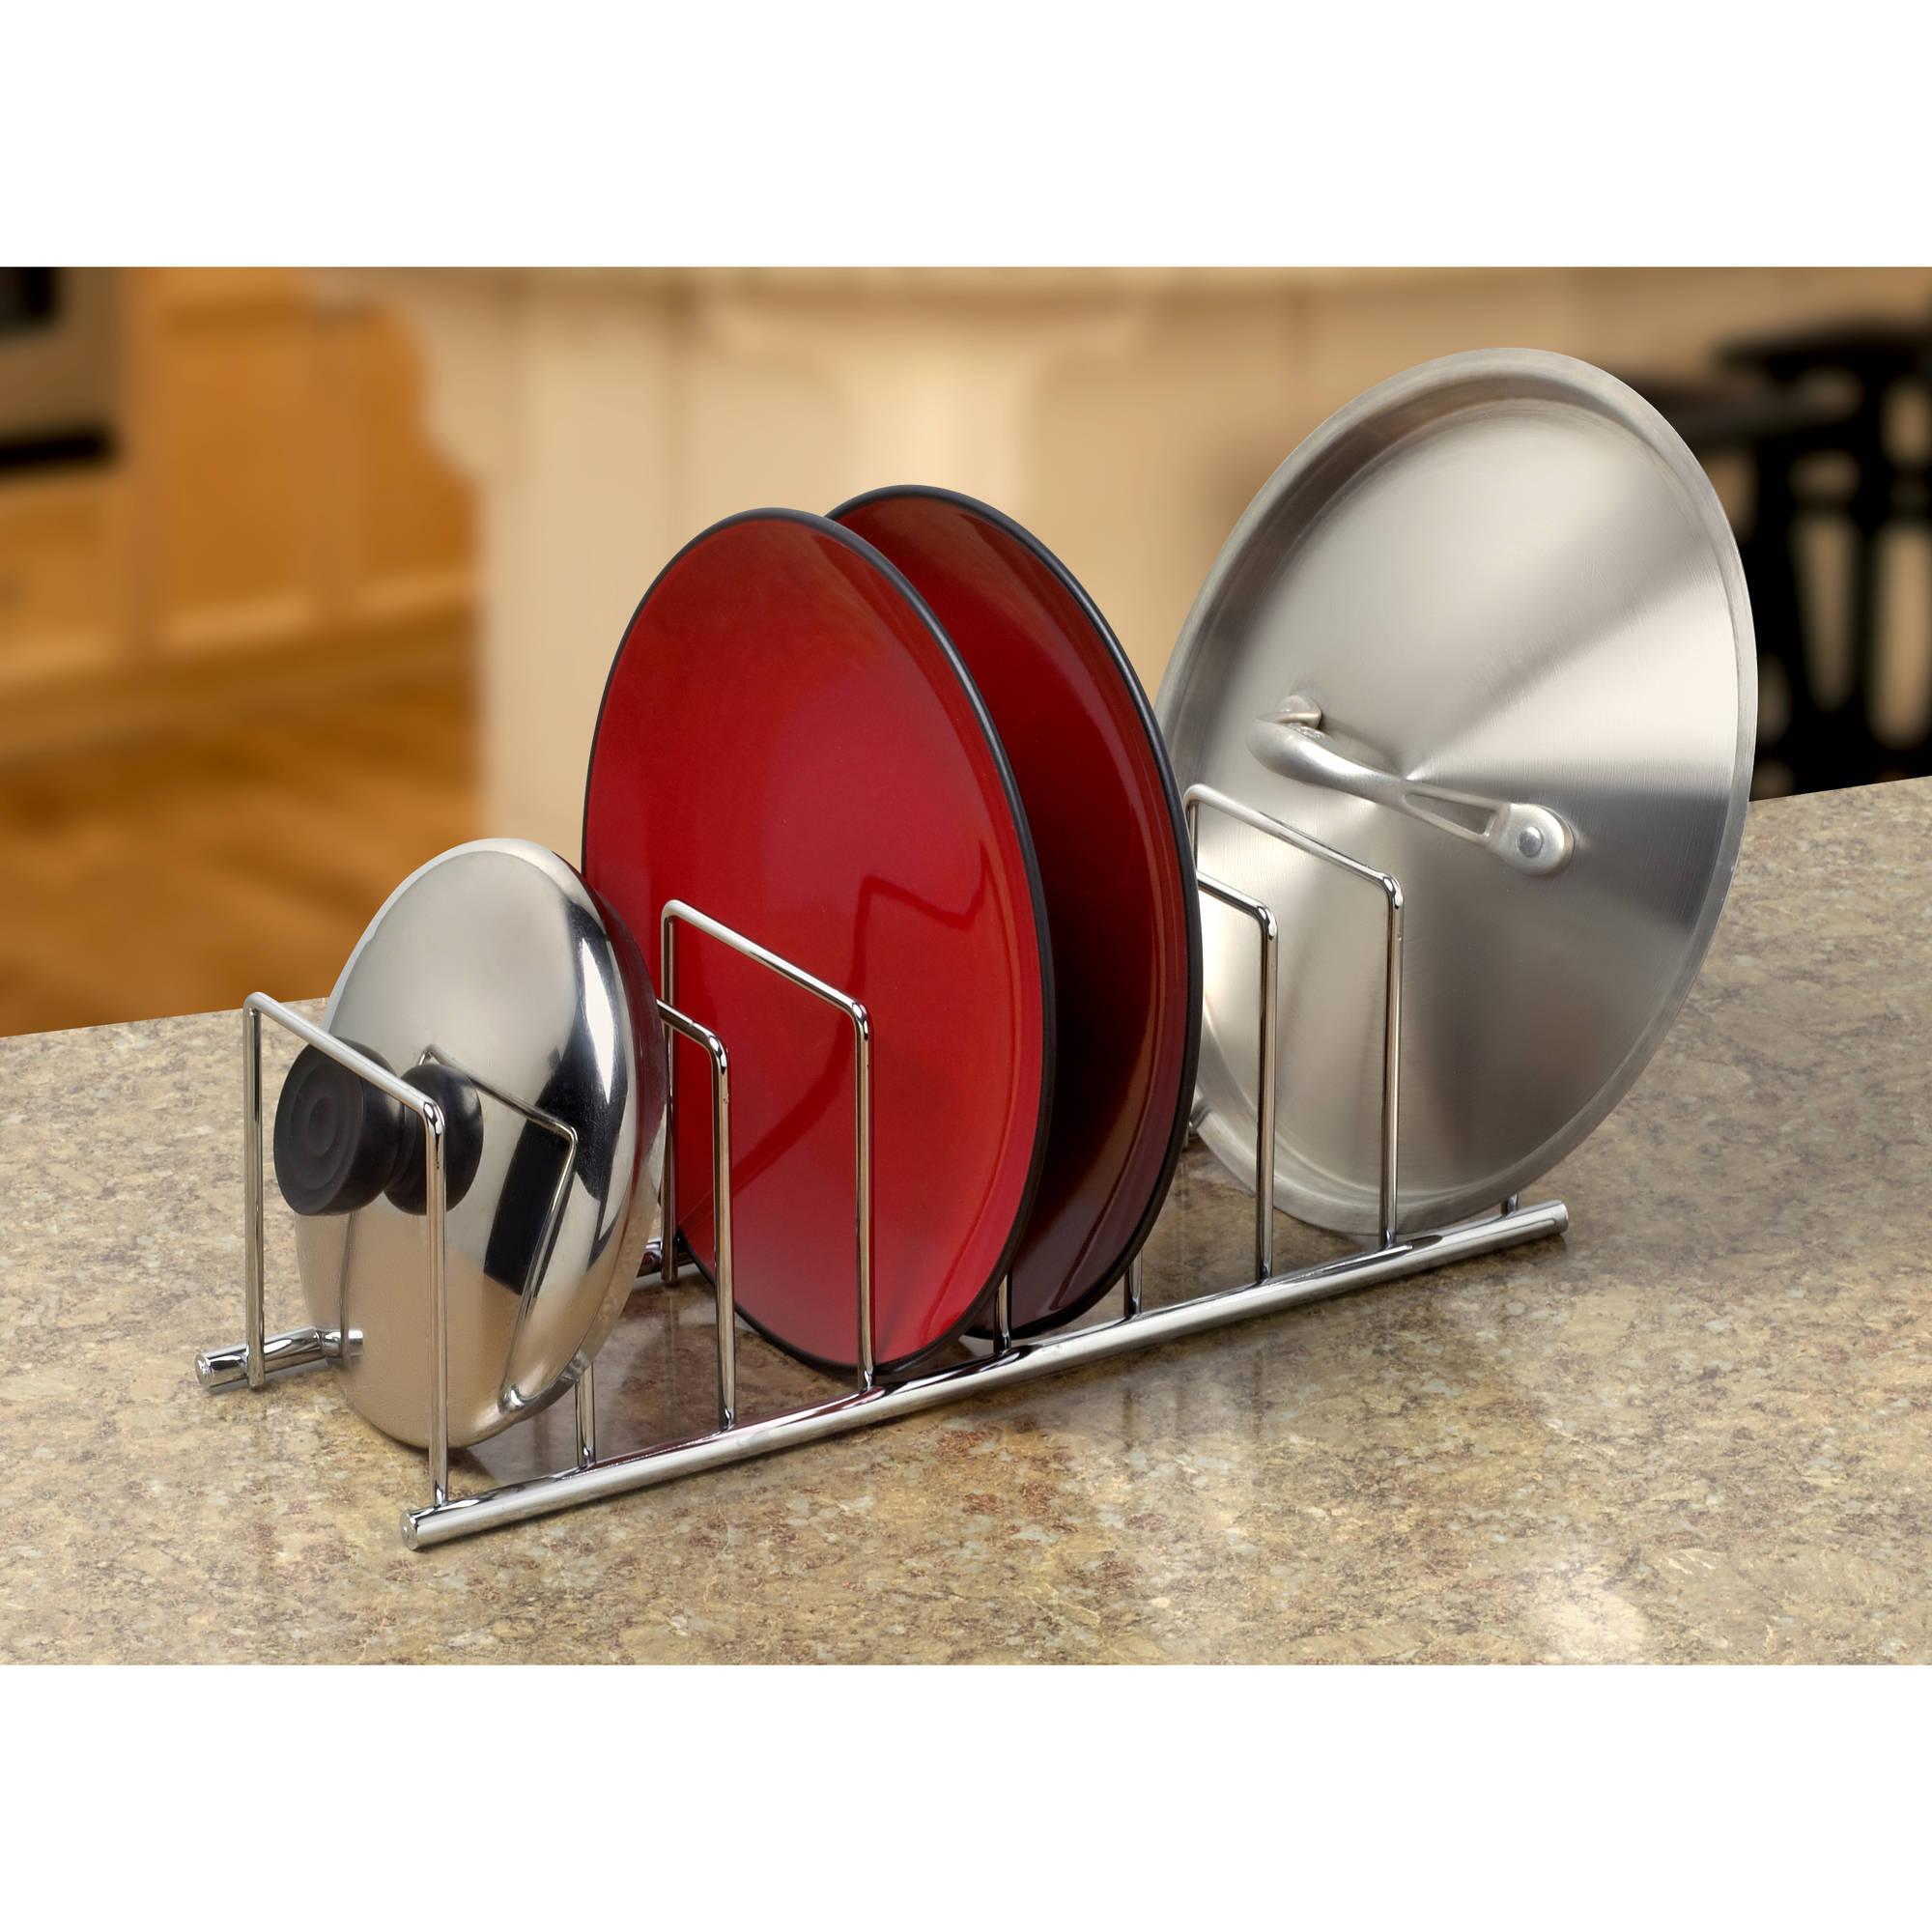 Spectrum Euro Kitchen and Lid Organizer, Chrome